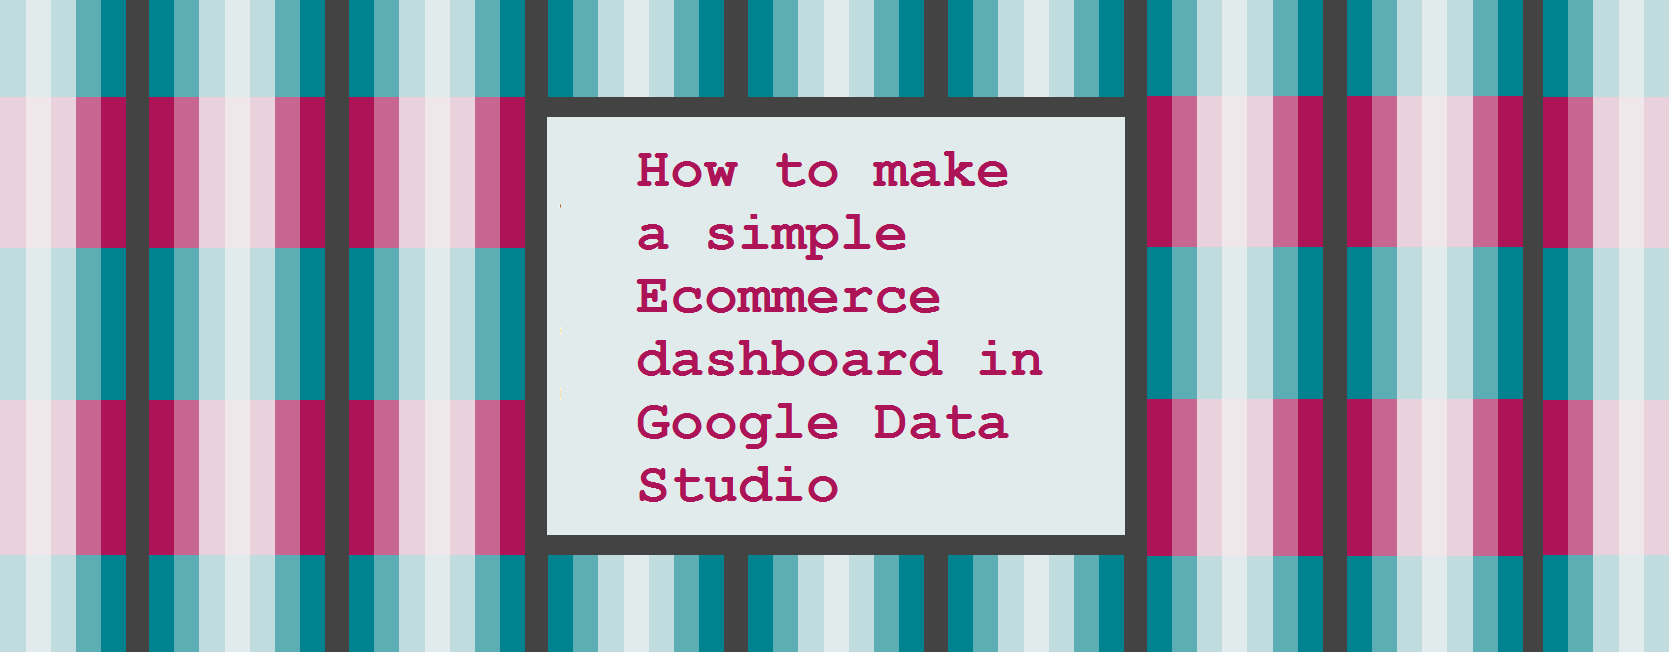 How to make a simple Ecommerce dashboard in Google Data Studio